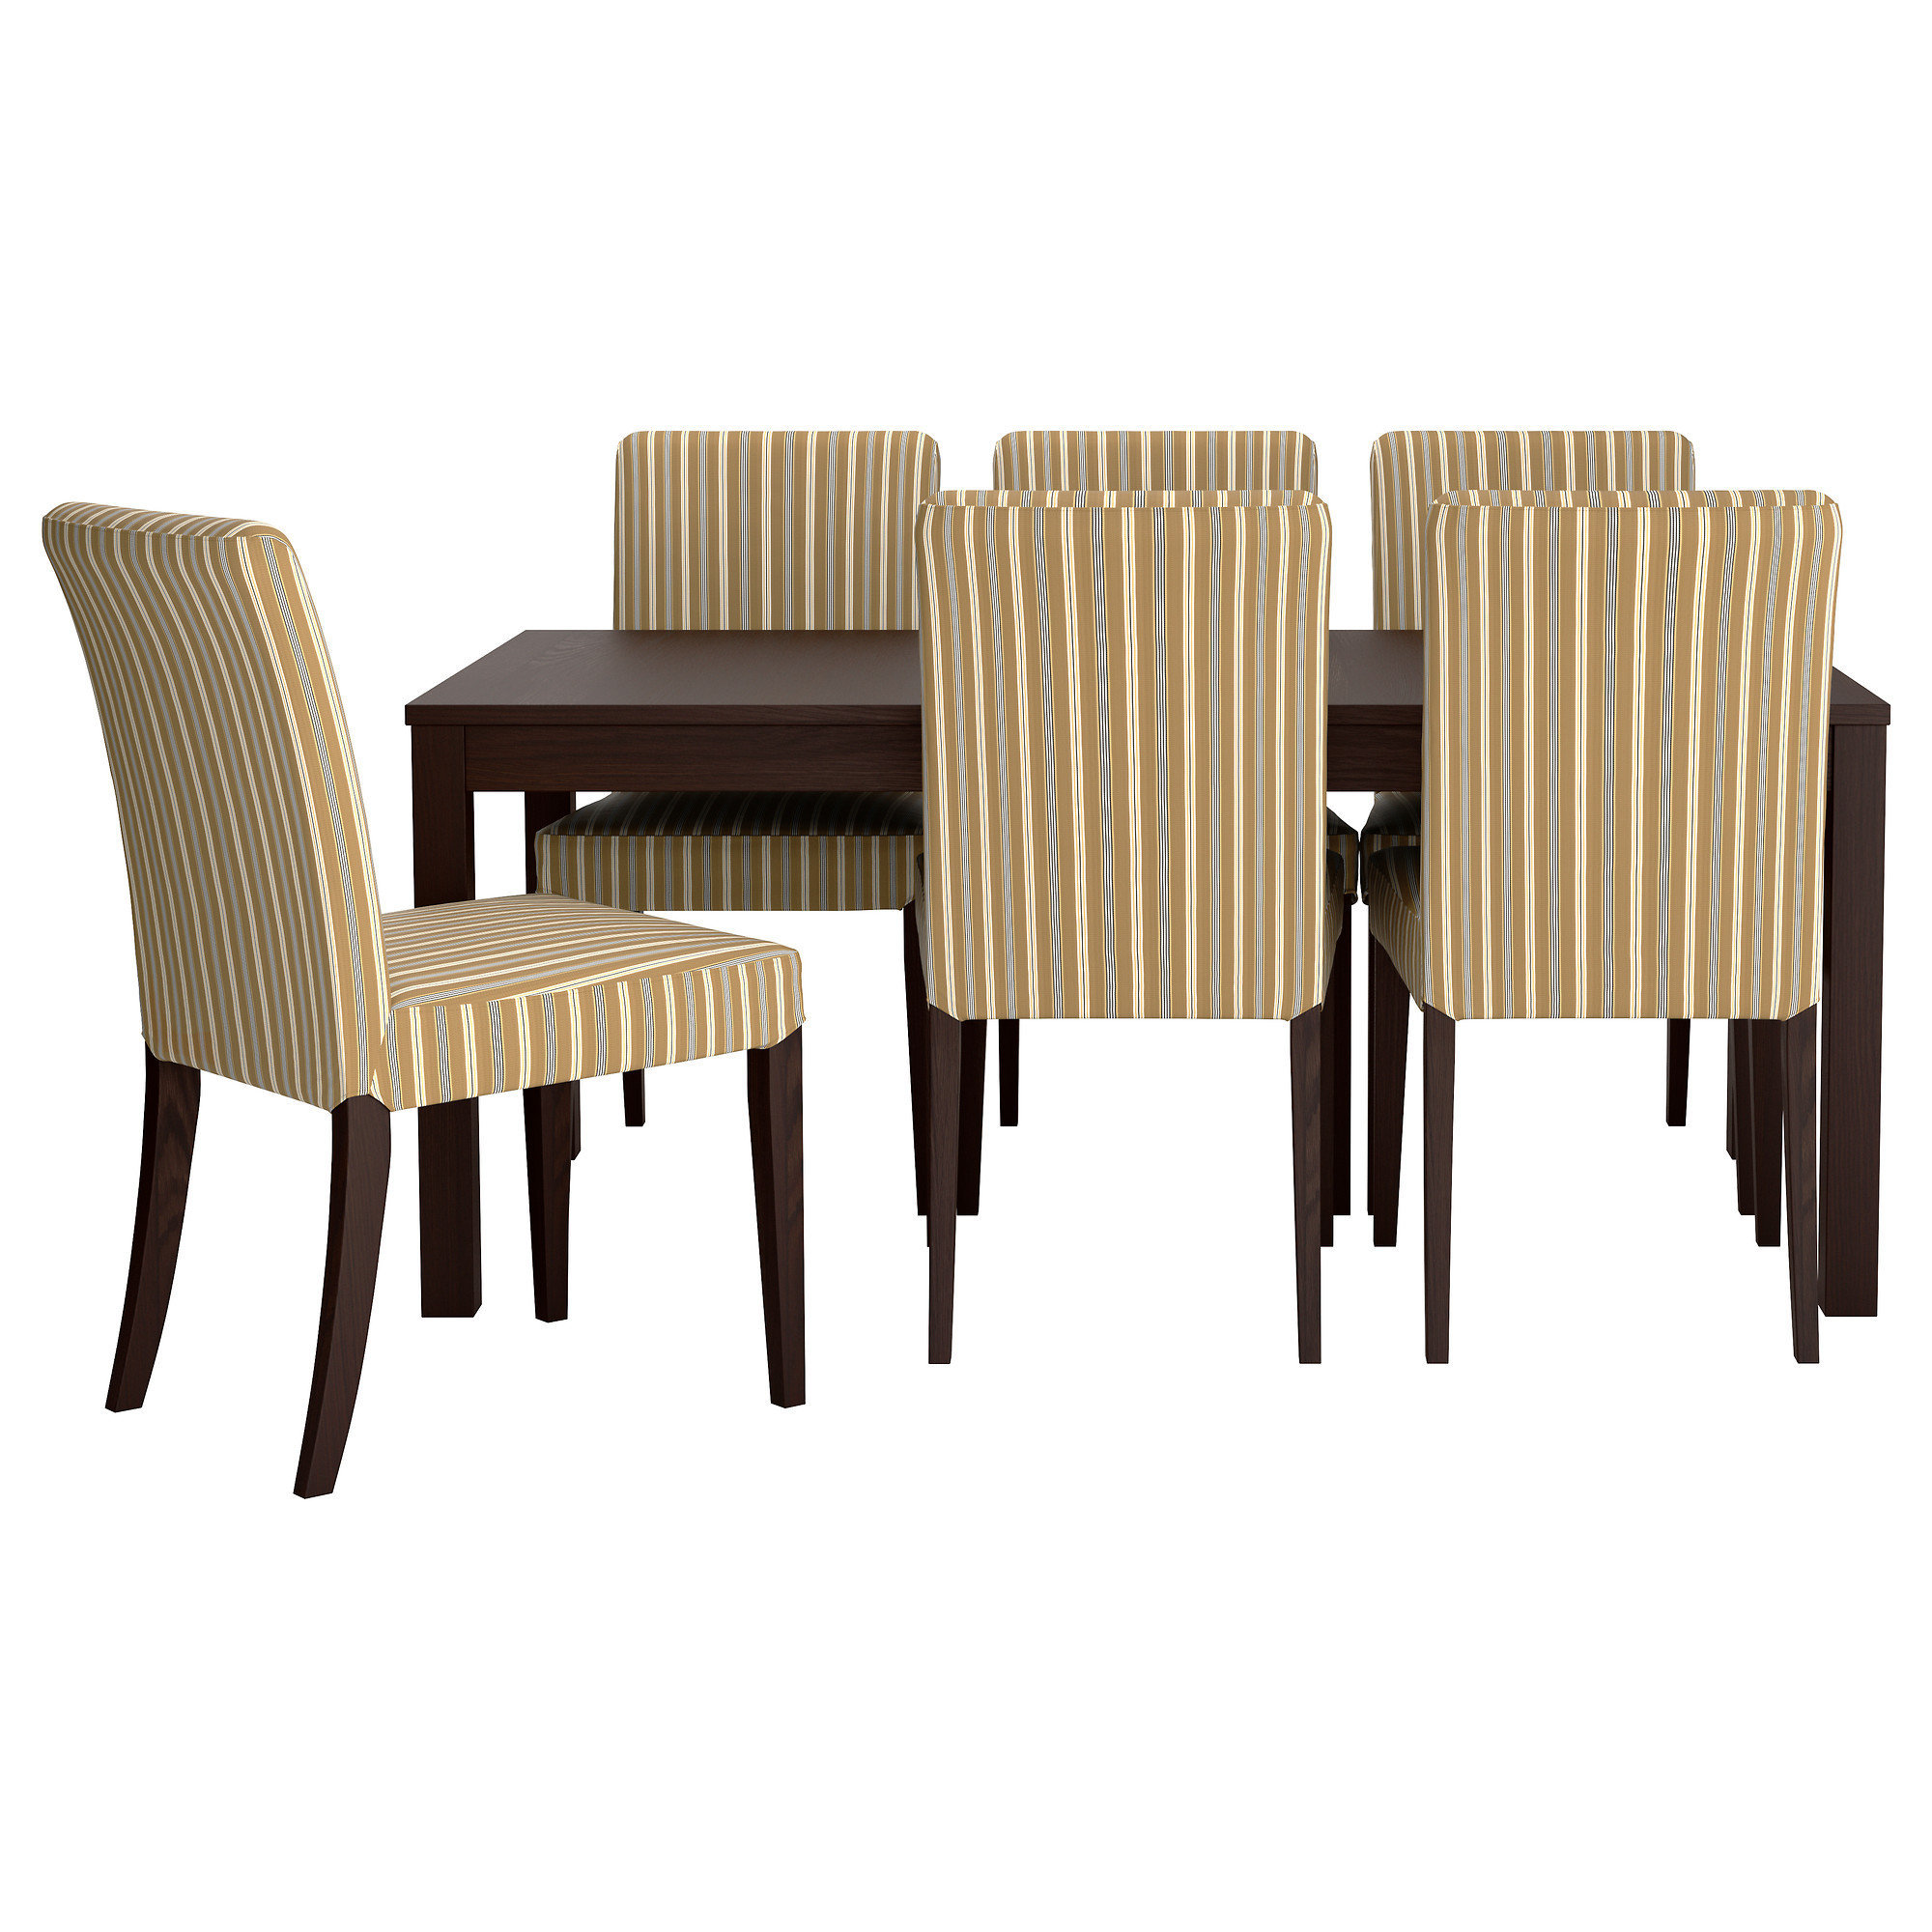 Black Dining Chairs Ikea Bjursta Henriksdal Table And 6 Chairs From Ikea Apartment